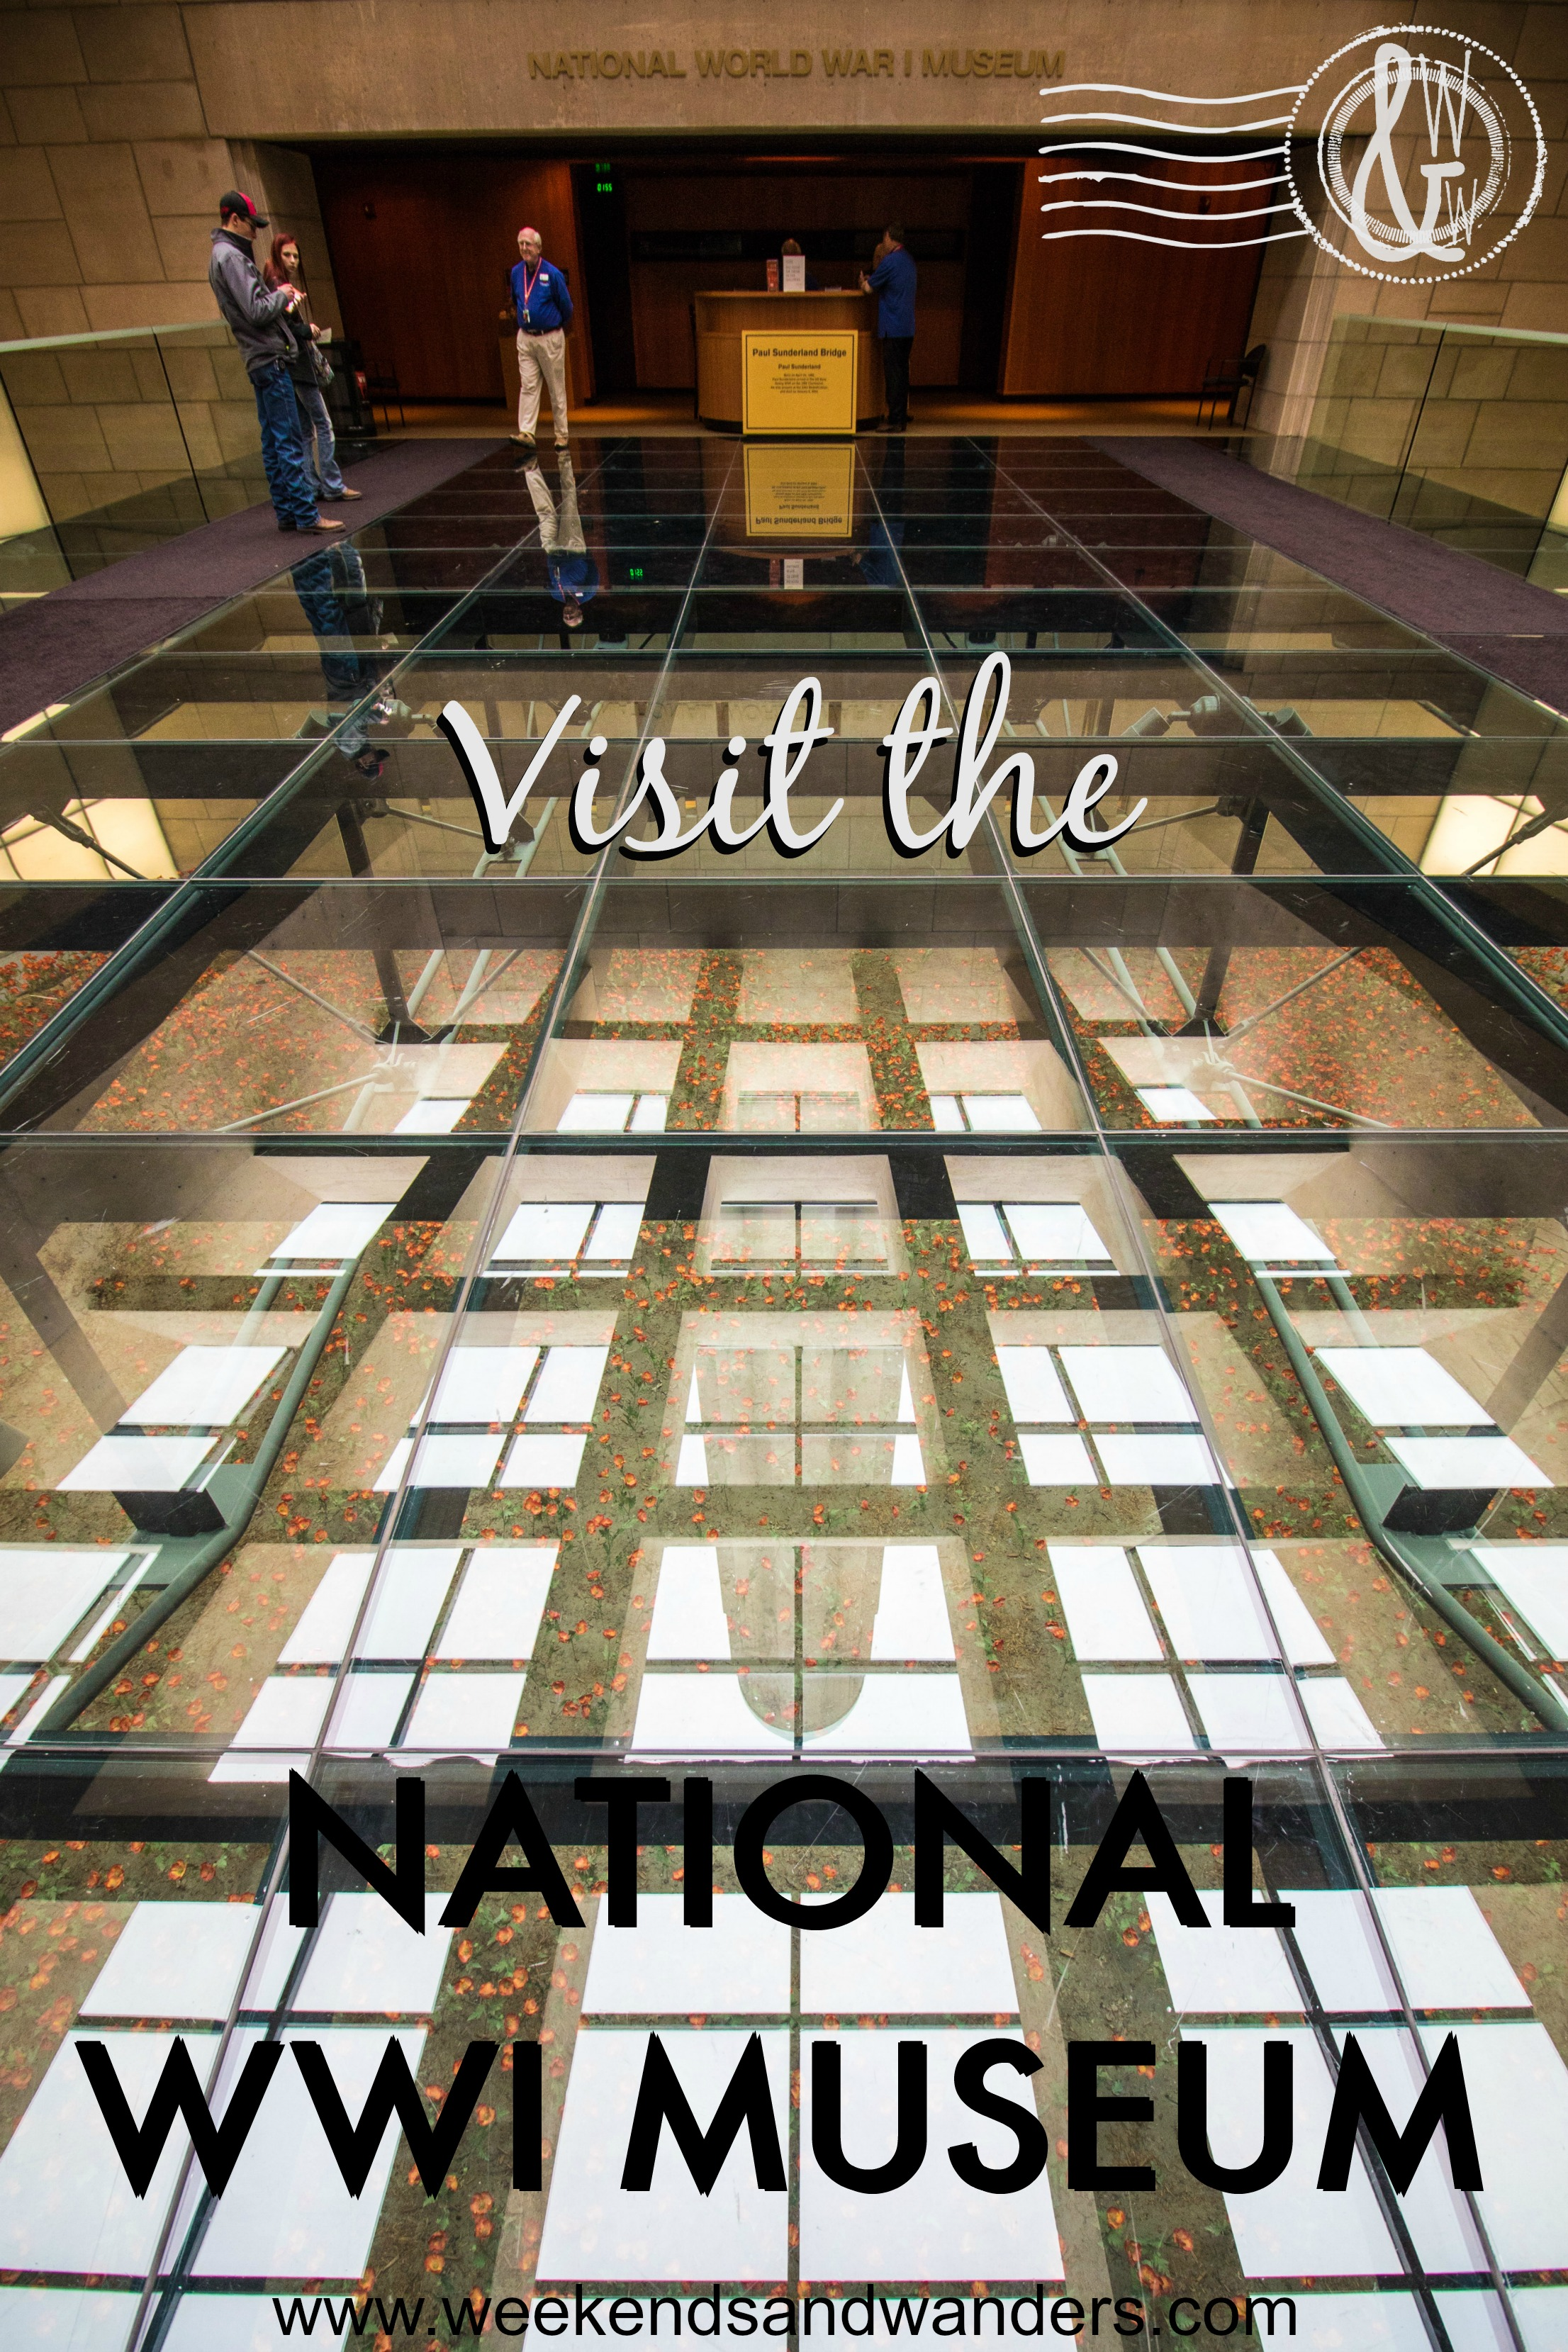 The National WWI Museum is one of Kansas City's best kept secrets. It's an architectural and cultural gem available to the entire nation!